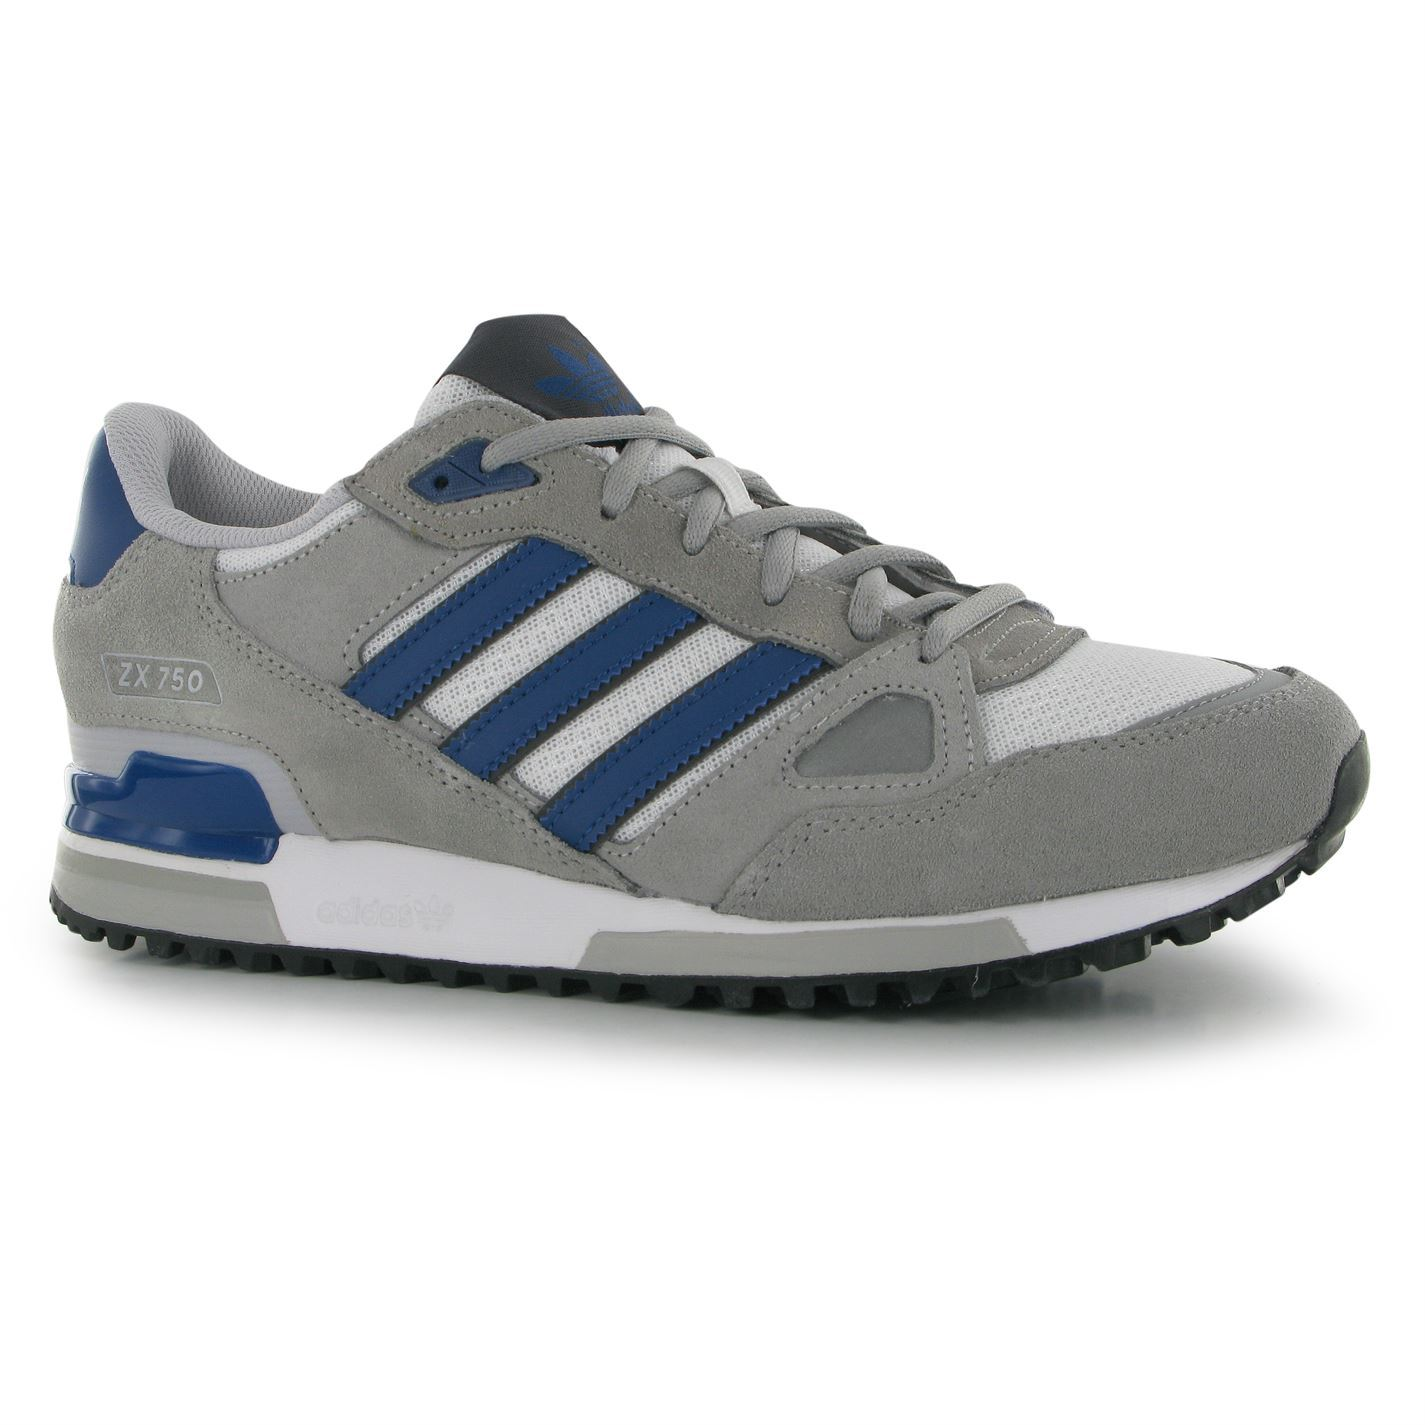 adidas clothing and shoes